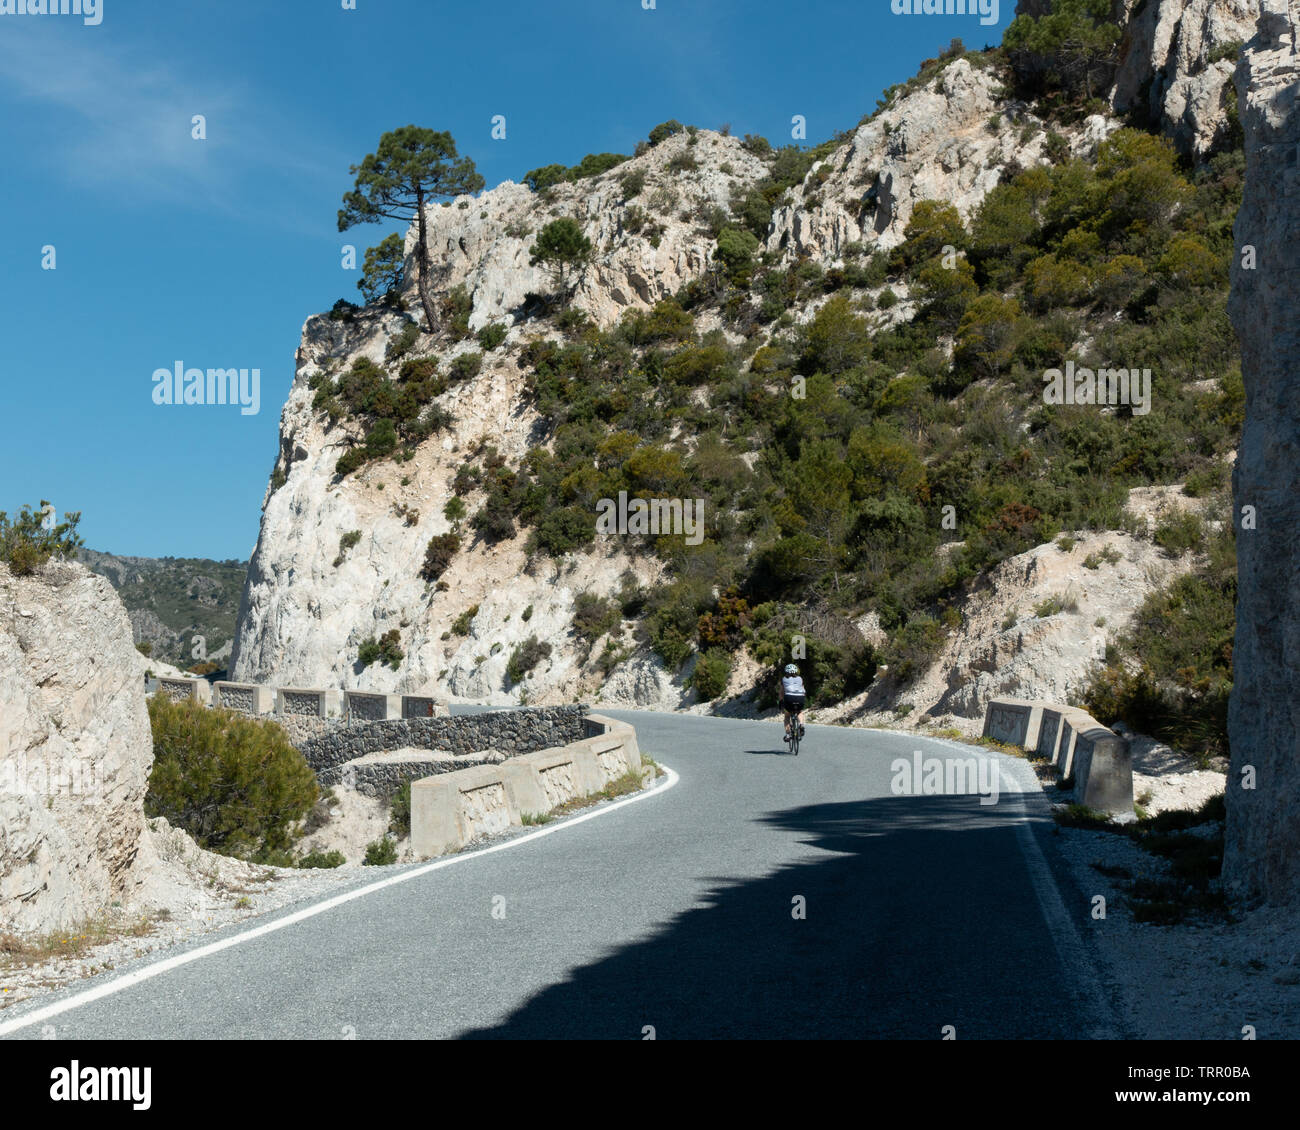 Winding its way up the mountain side, a female cyclist enjoys the cycle ride from the beautiful Goat's Path road (A-4050) through towering limestone c - Stock Image